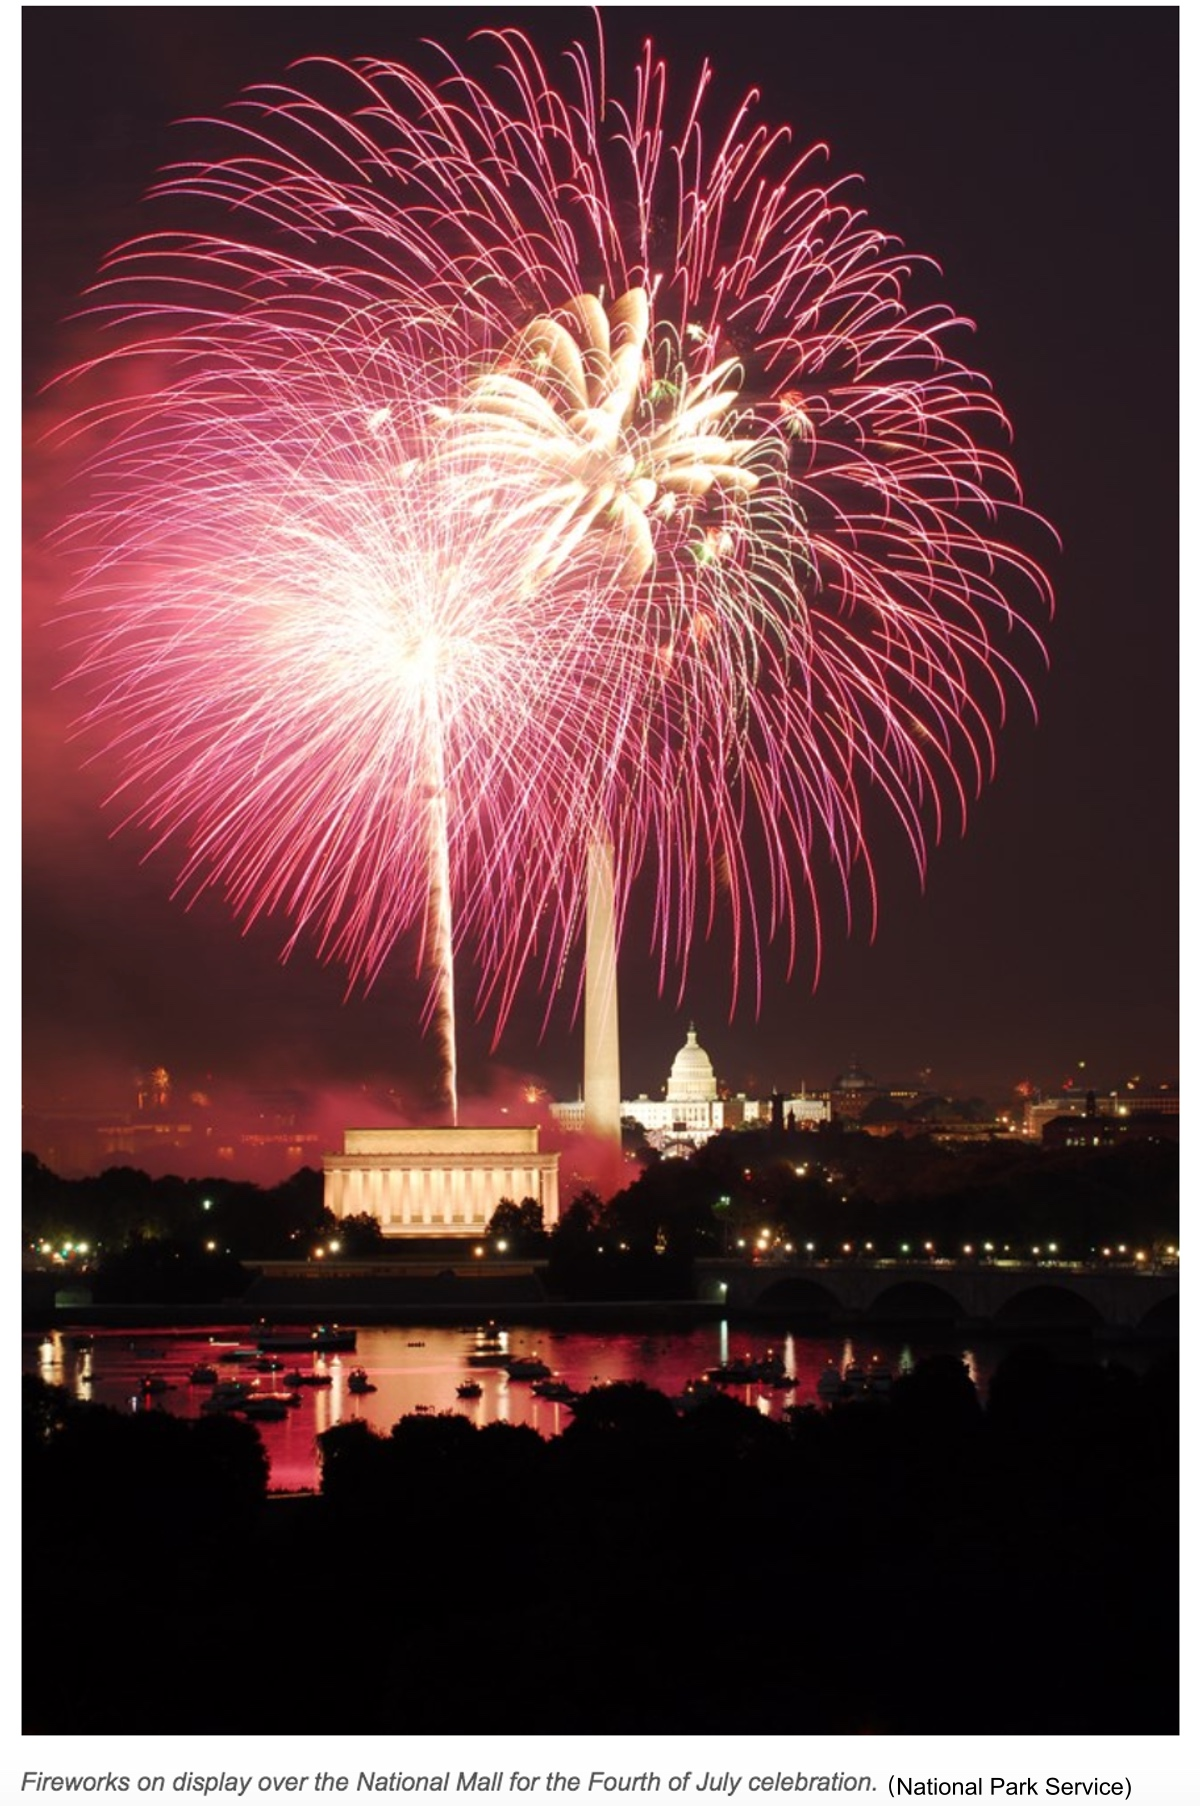 2020-07-04-Fireworks on display over the National Mall 华盛顿国家广场烟花NPS